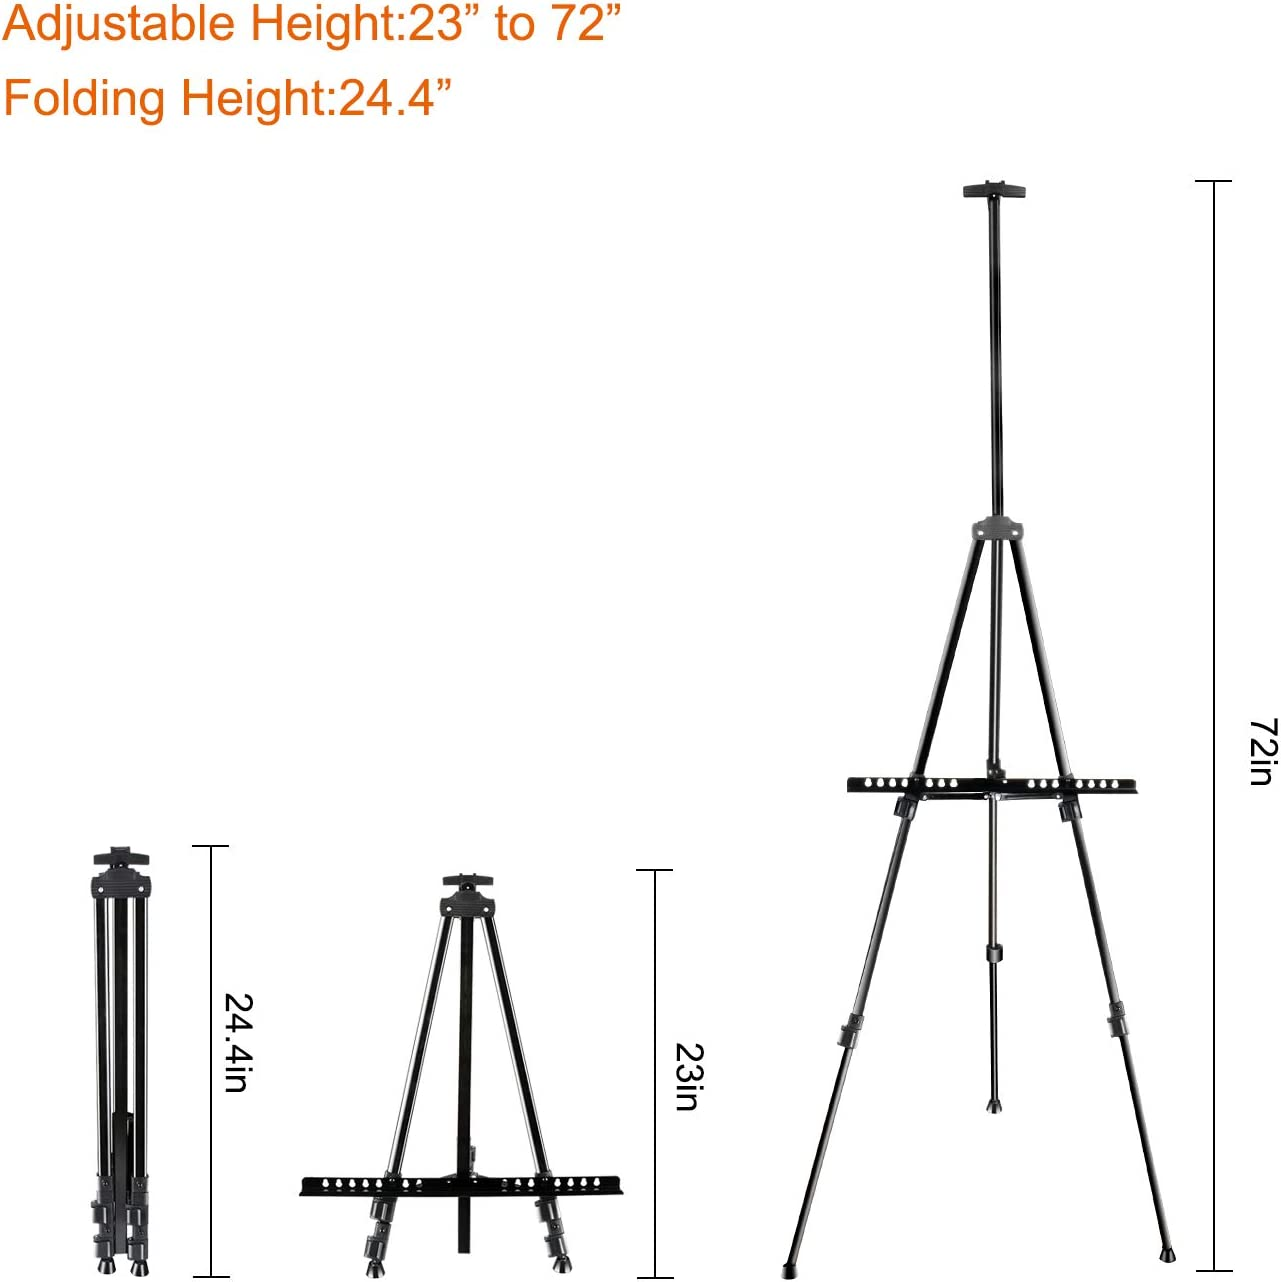 FUDESY 72 Easel Stand,Extra Sturdy Black Aluminum Metal Display Easel Artist Easel Tripod Adjustable Height from 22 to 72 for Table-Top//Floor Painting,Displaying and Drawing with Portable Bag